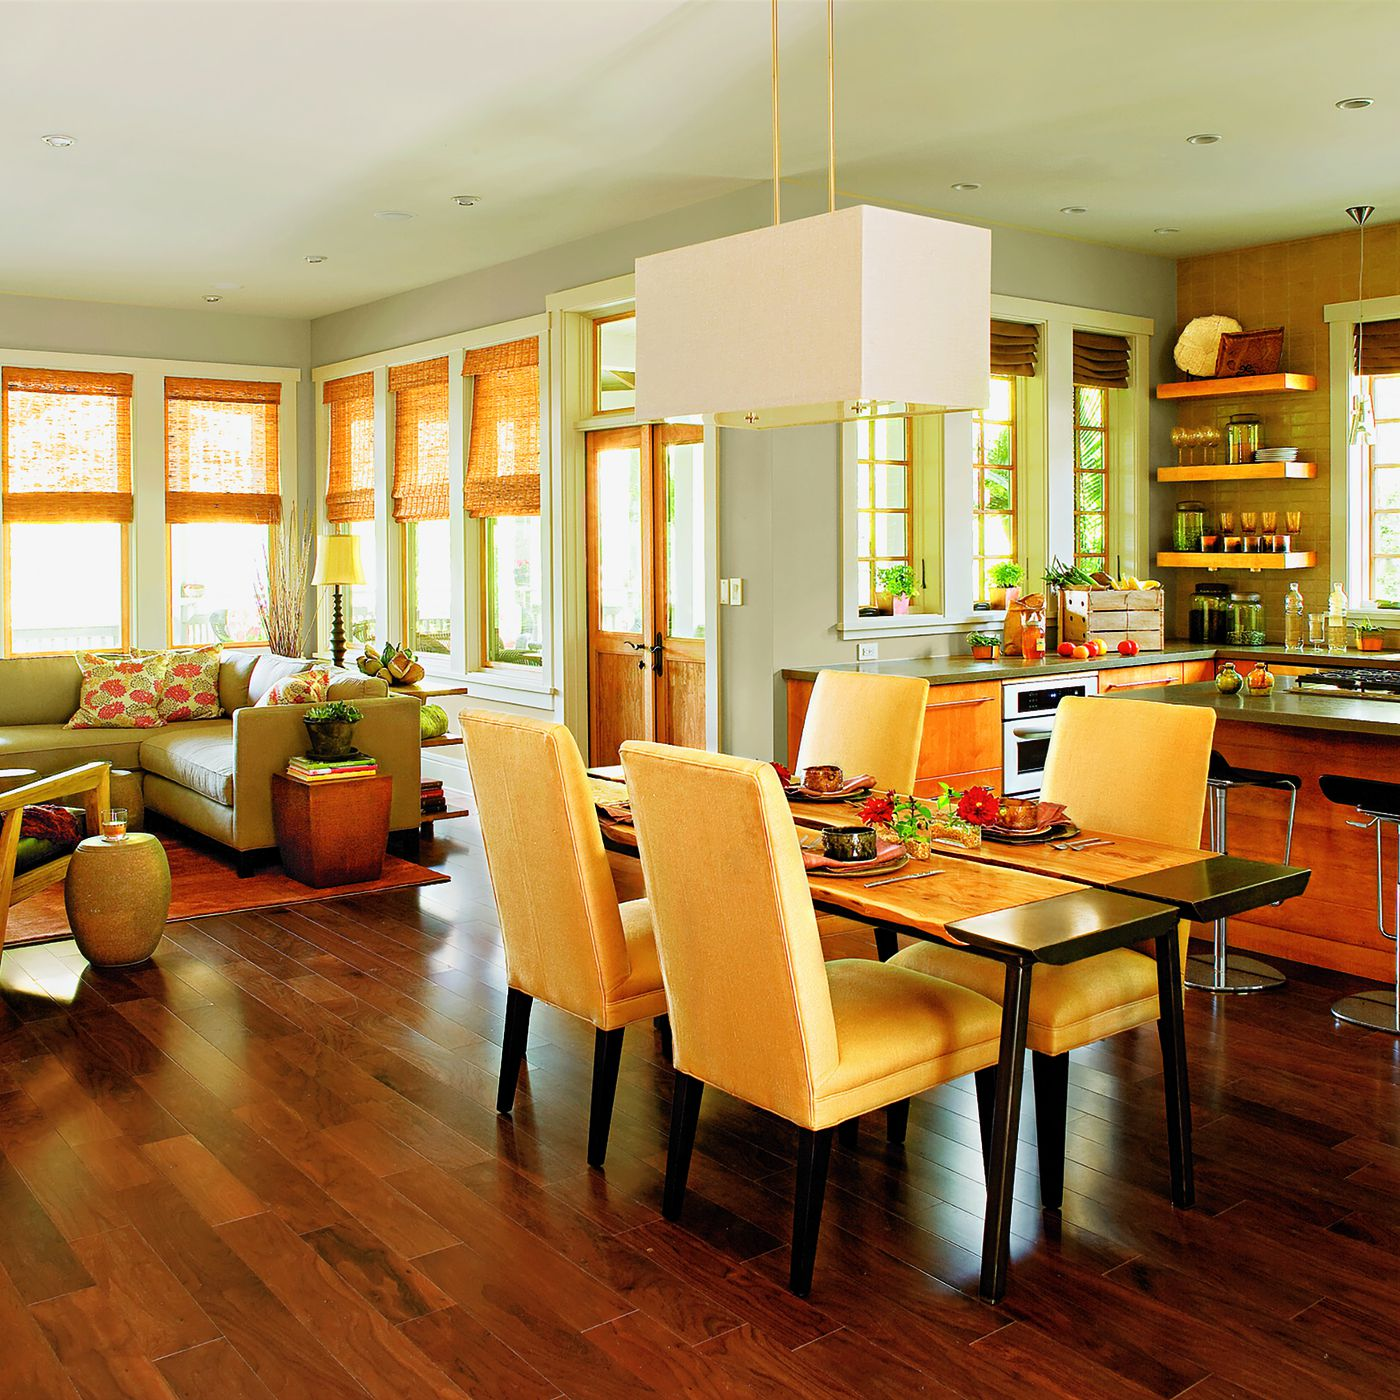 Hardwood Flooring: Types, Costs, and Finishing Options - This Old